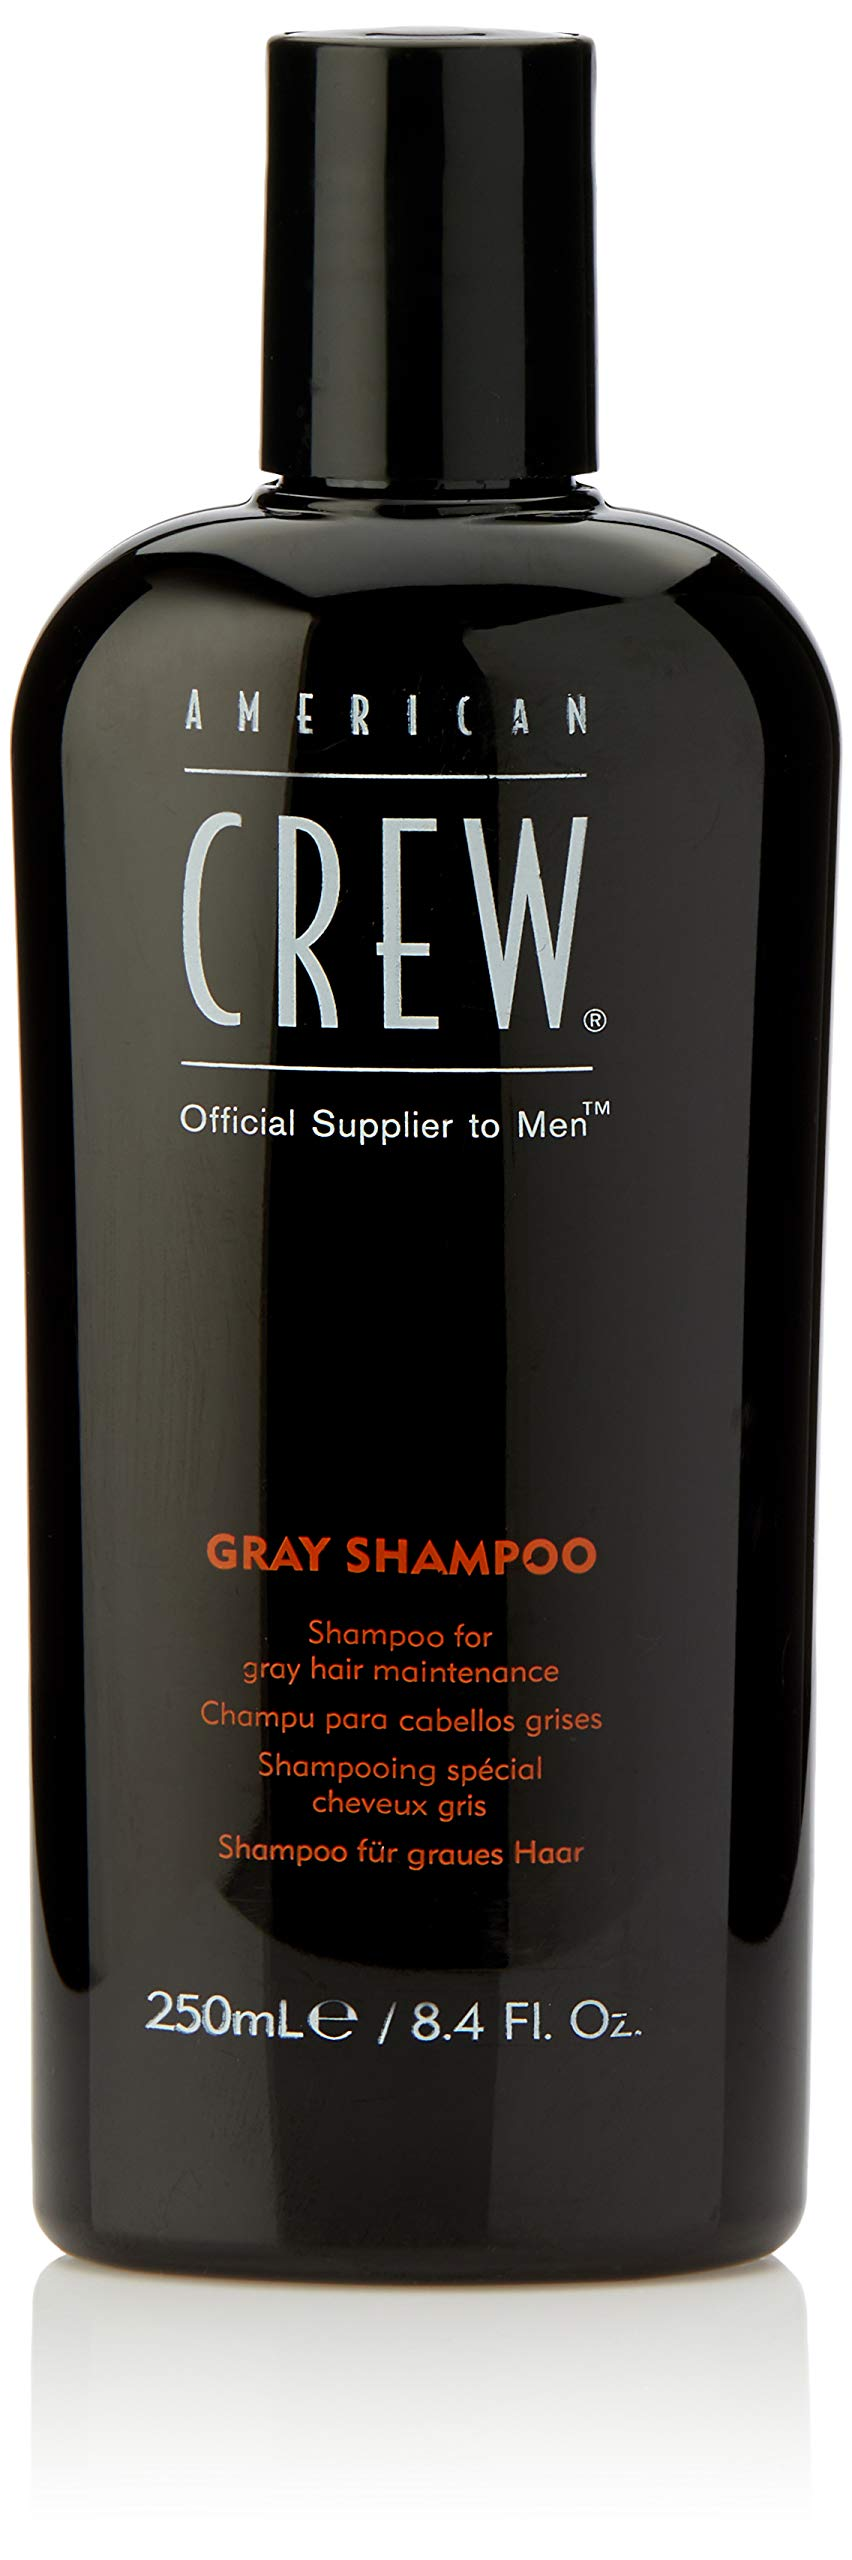 American Crew Gray Shampoo for Men, 8.45 Fl. Oz.